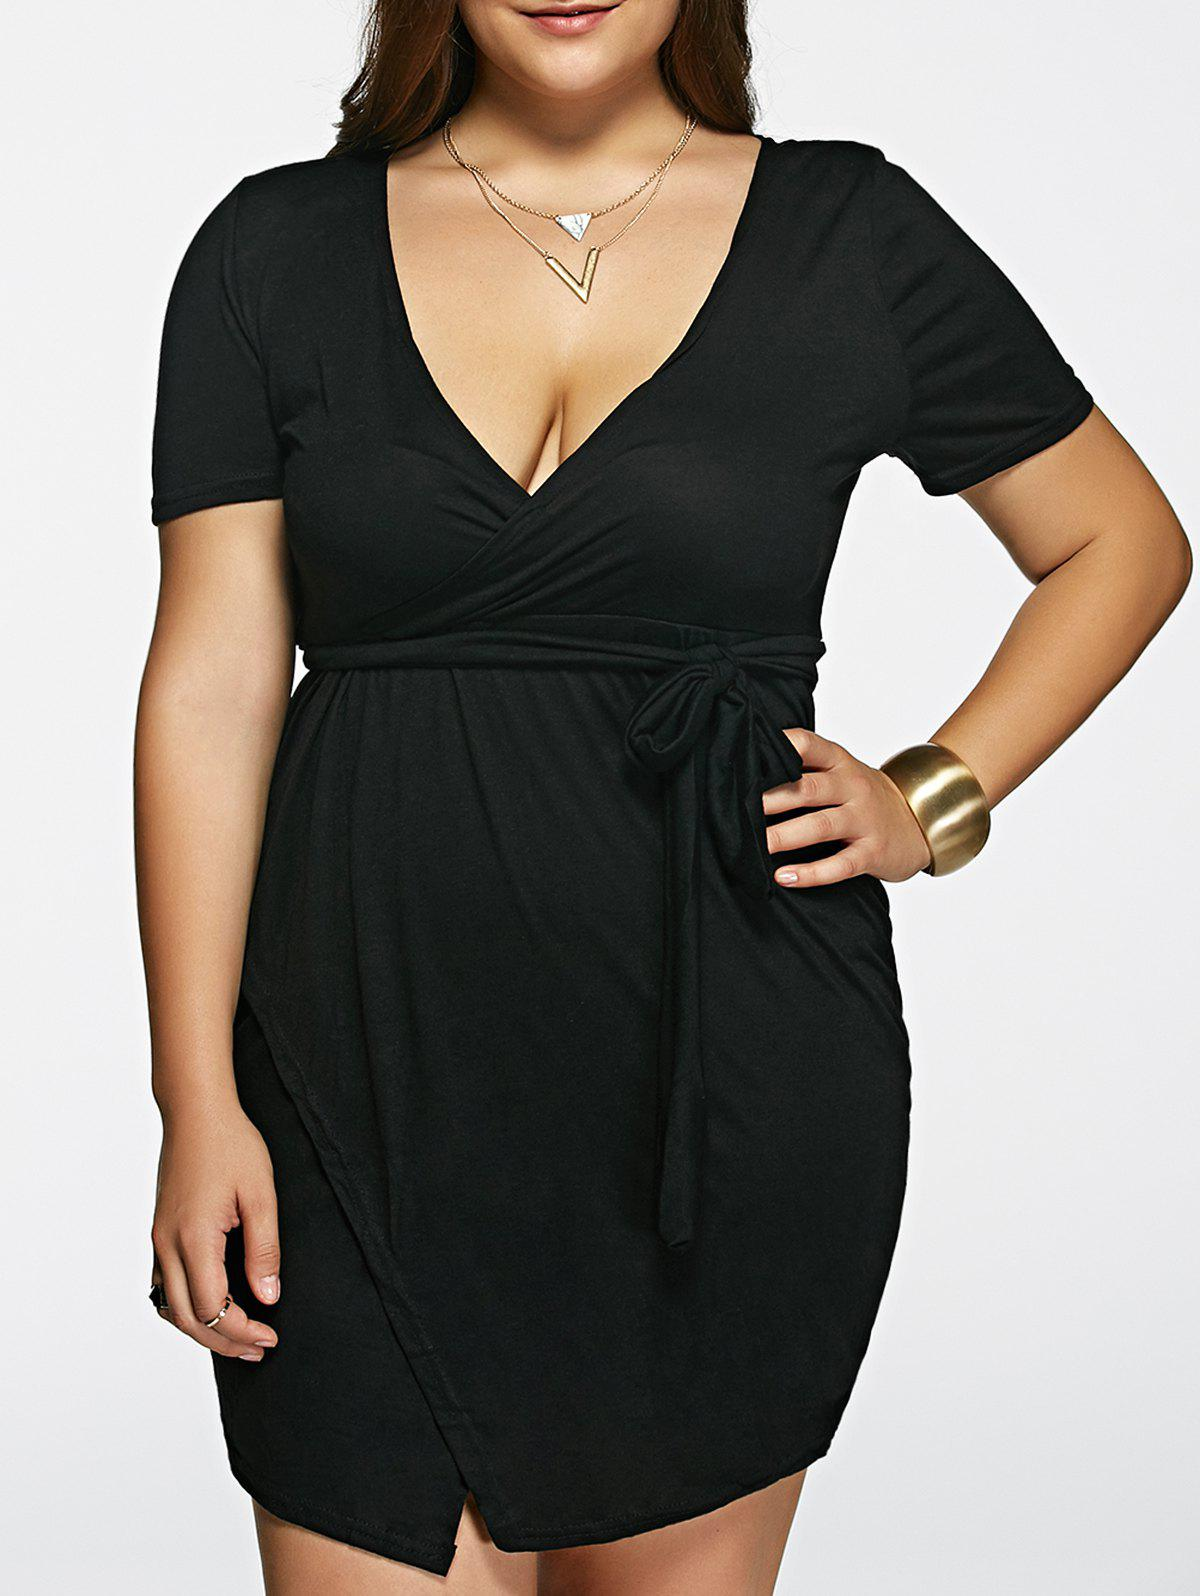 Stylish Women's Plunging Neck Solid Color Short Sleeve Black Plus Size Dress - BLACK 3XL